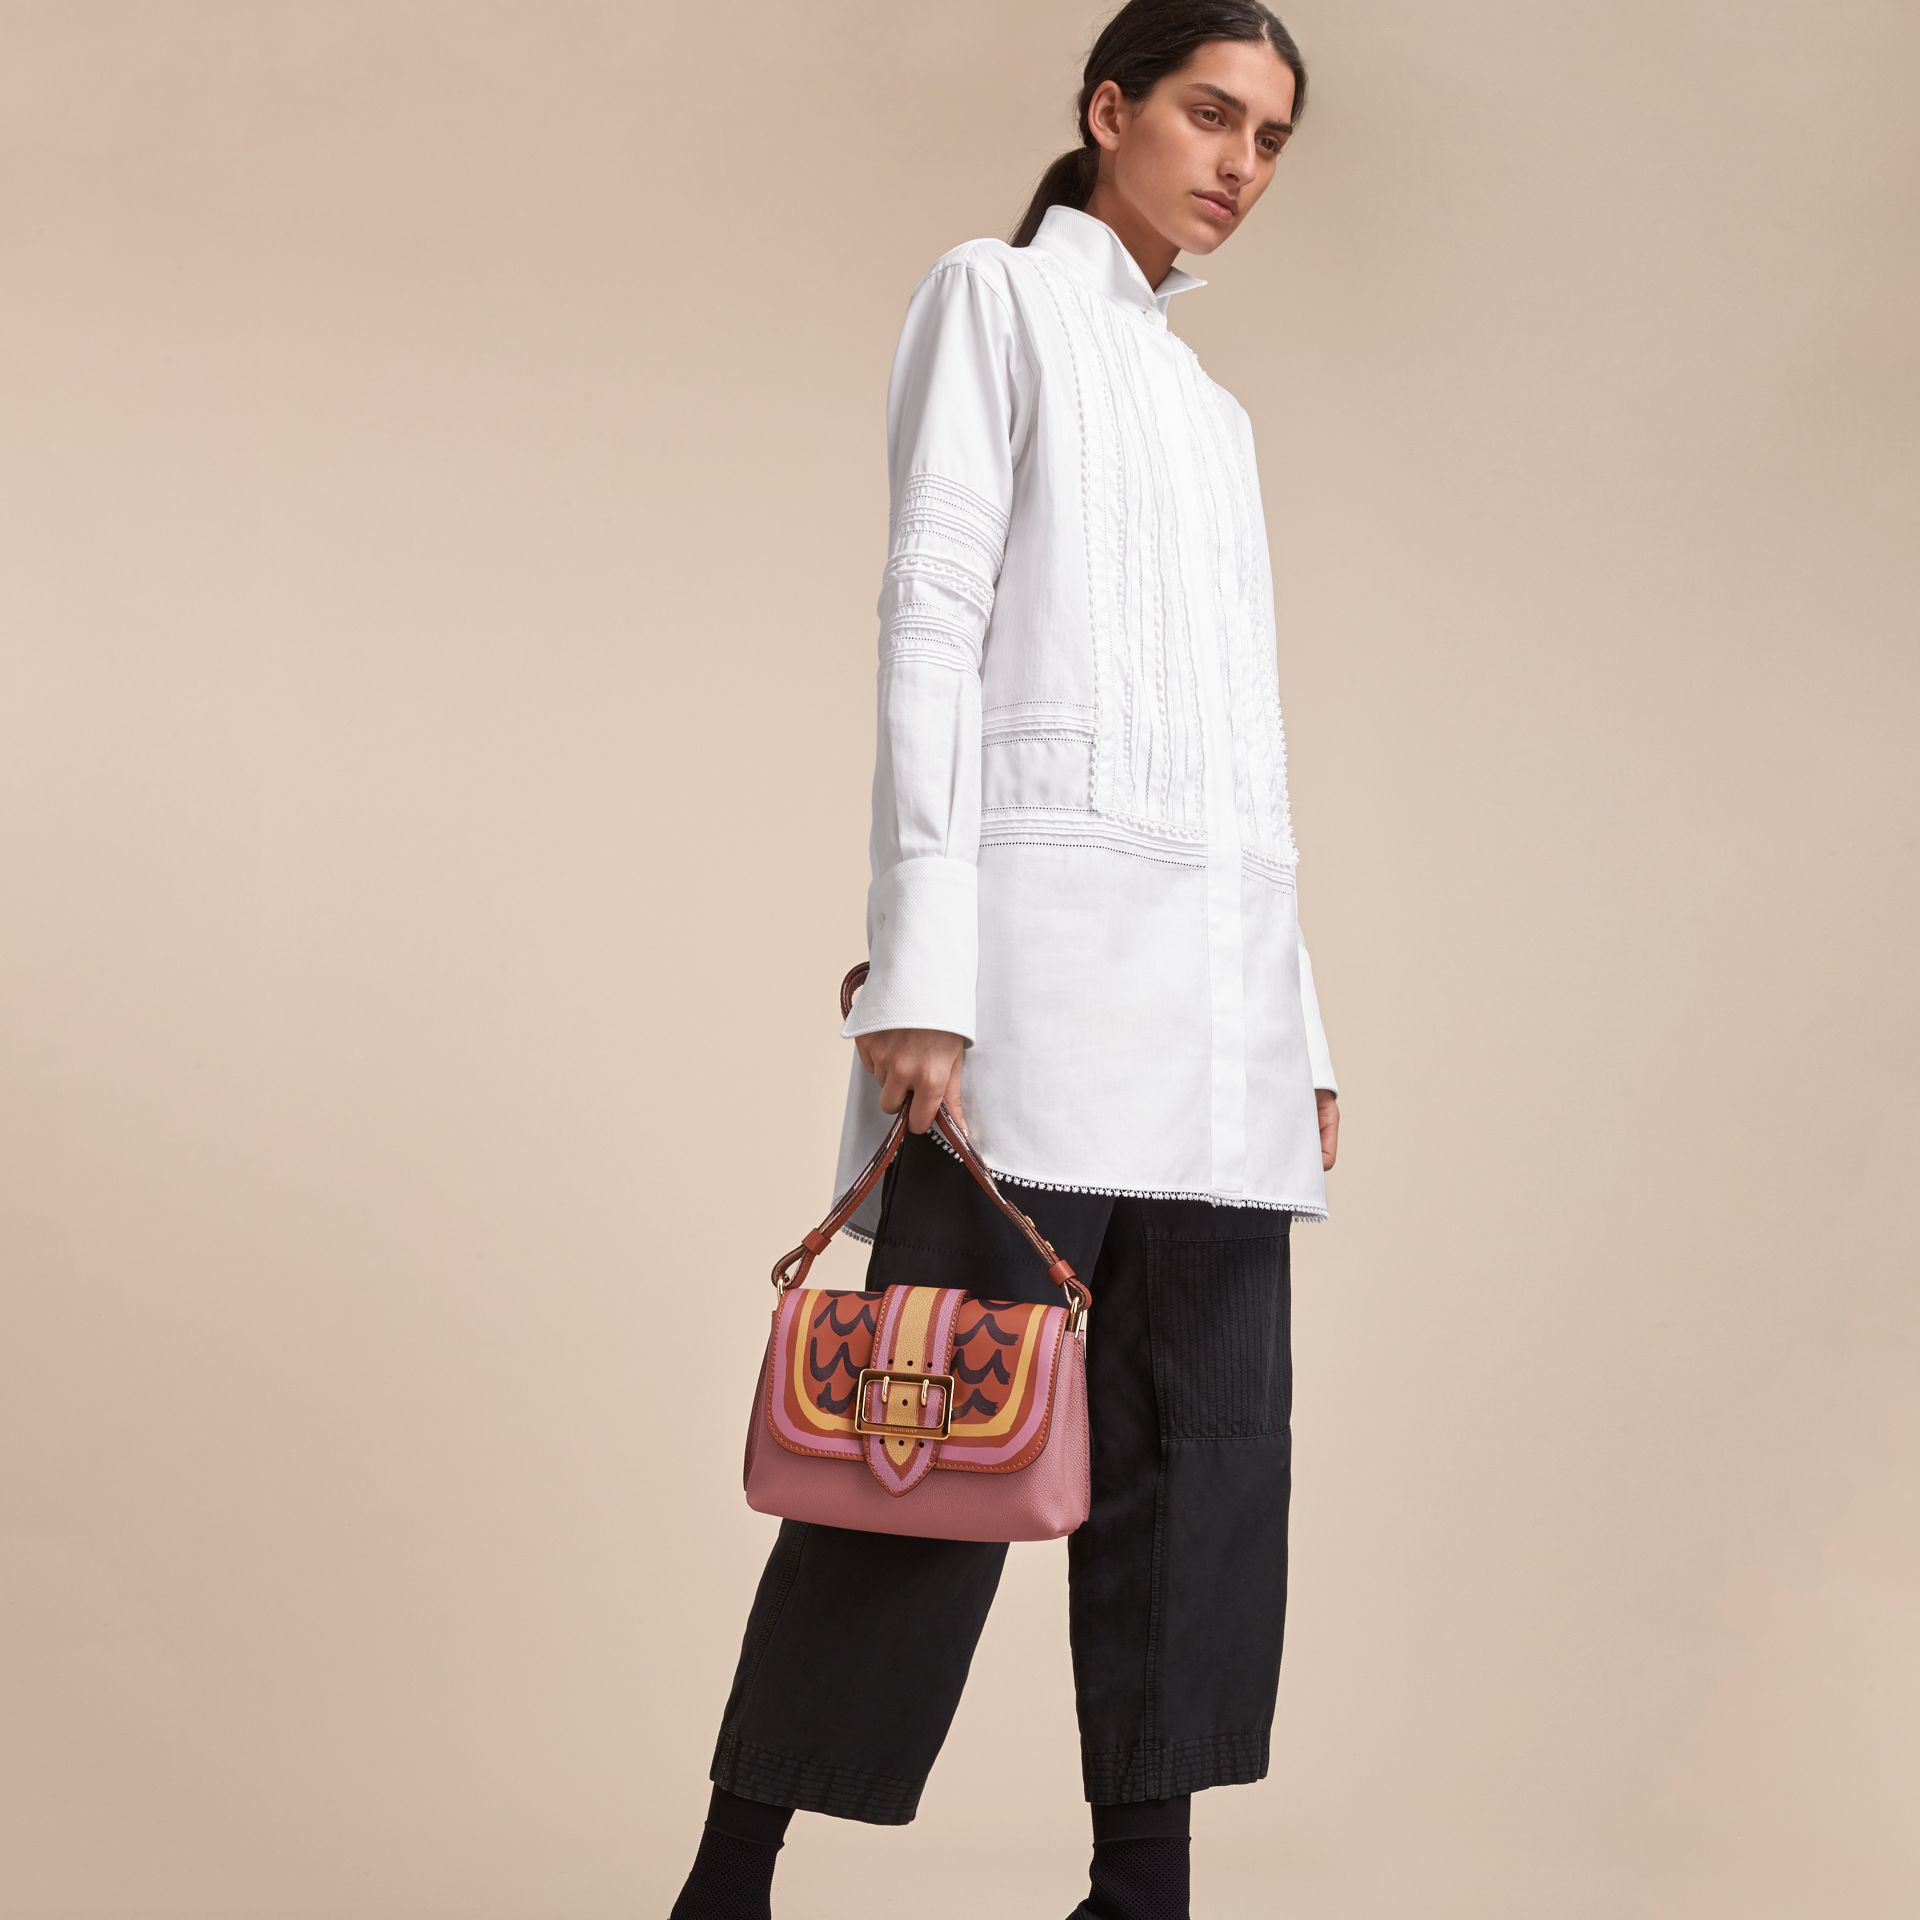 The Buckle Crossbody Bag in Trompe L'oeil Leather in Dusty Pink/bright Toffee - gallery image 8